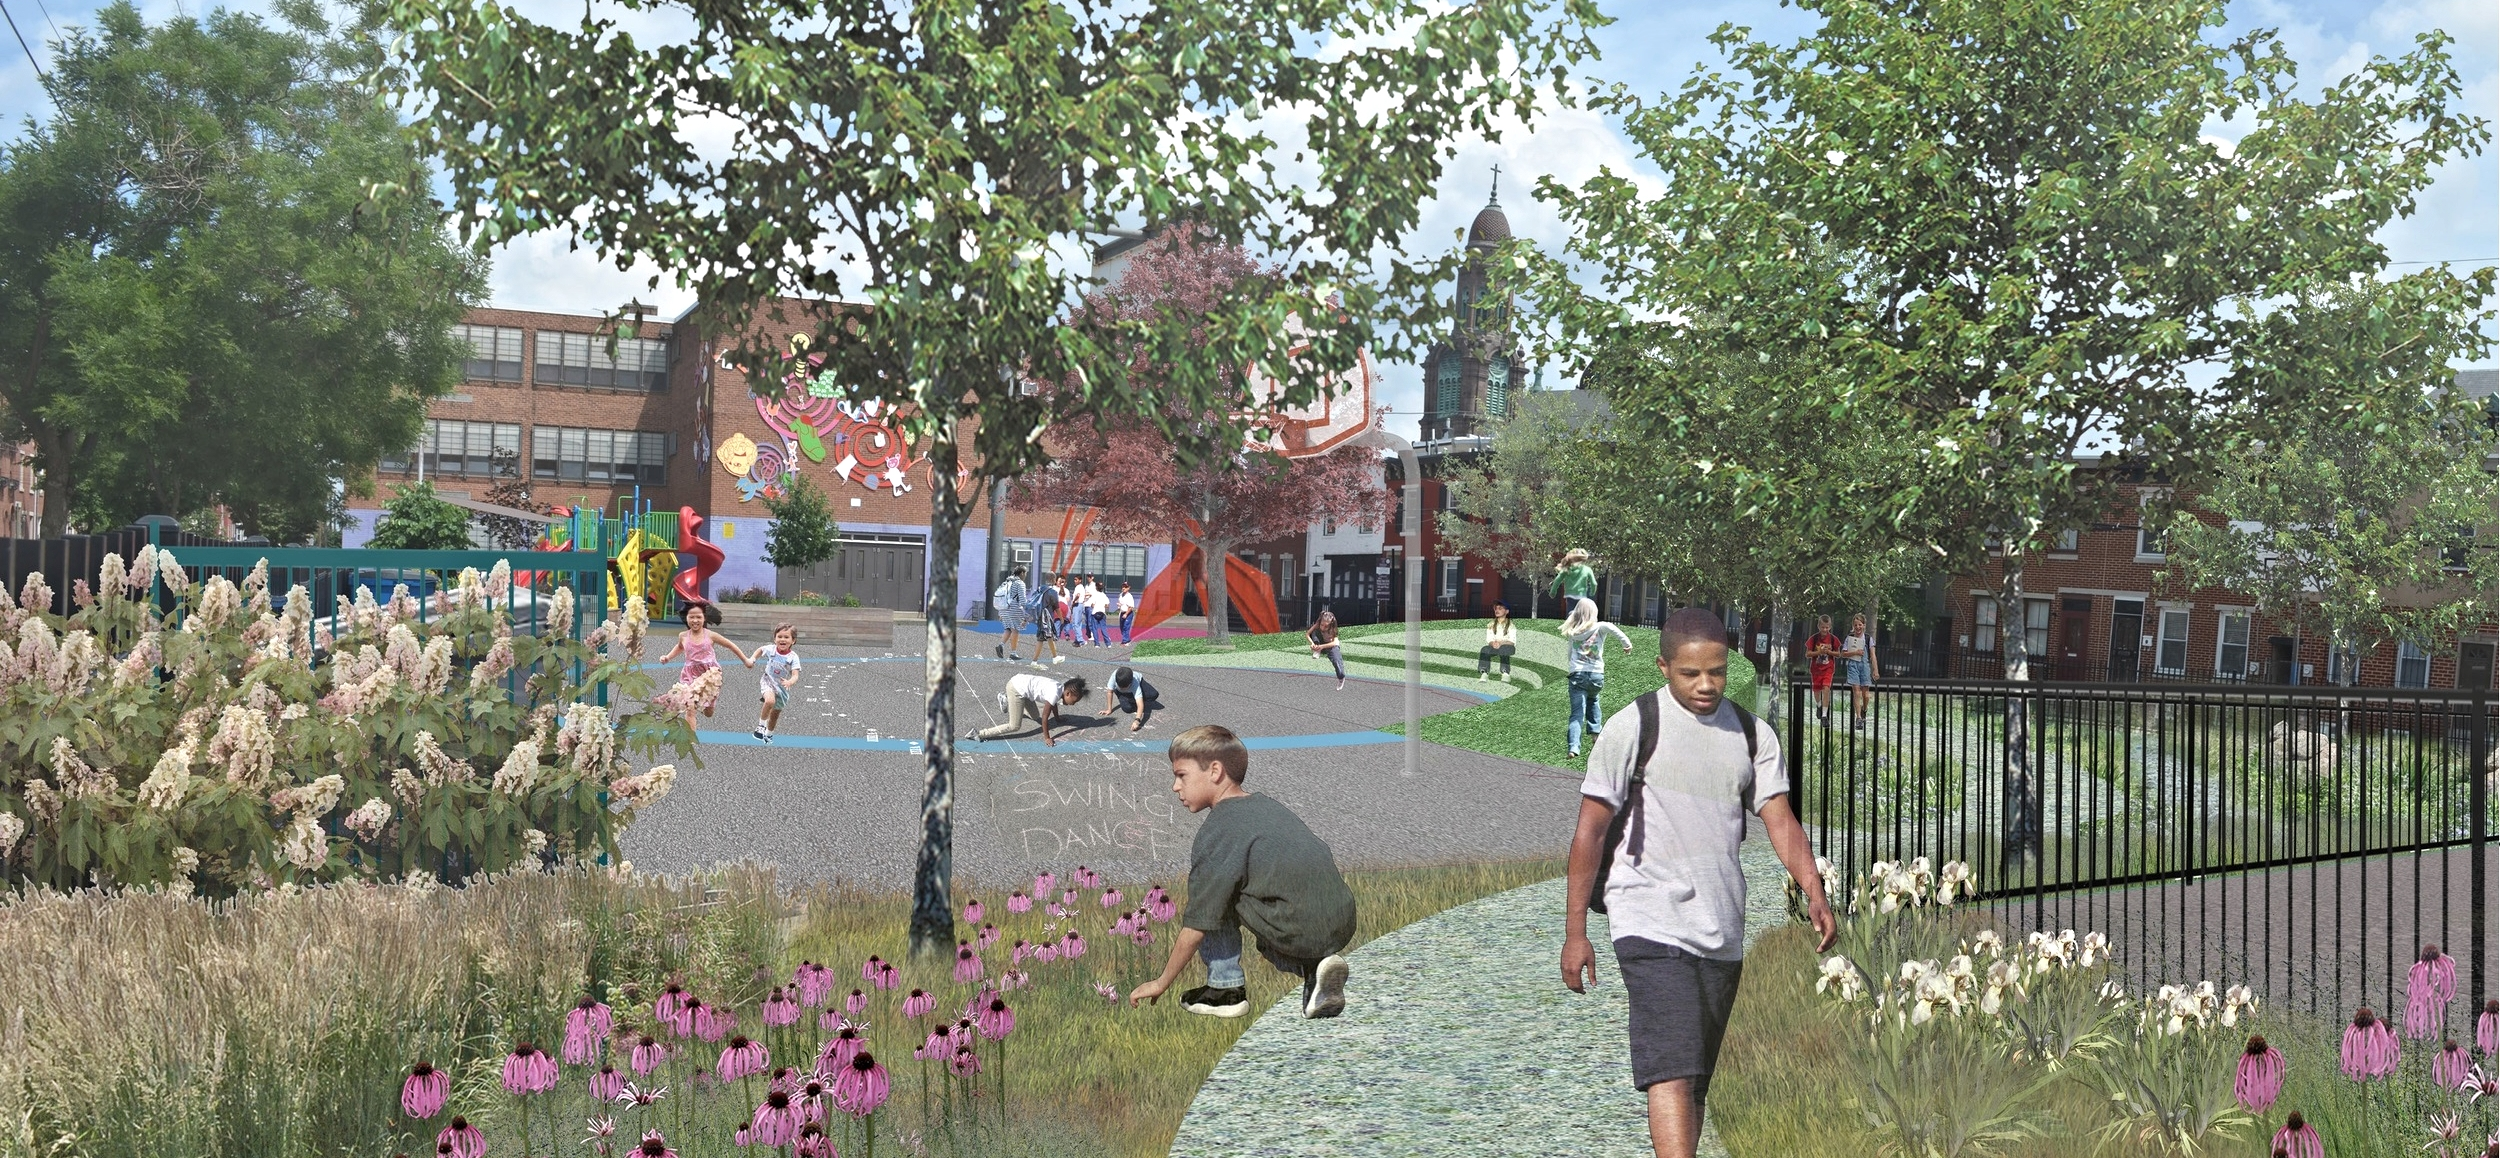 New Arthur Interactive Play & Learning Lab Breaks Ground